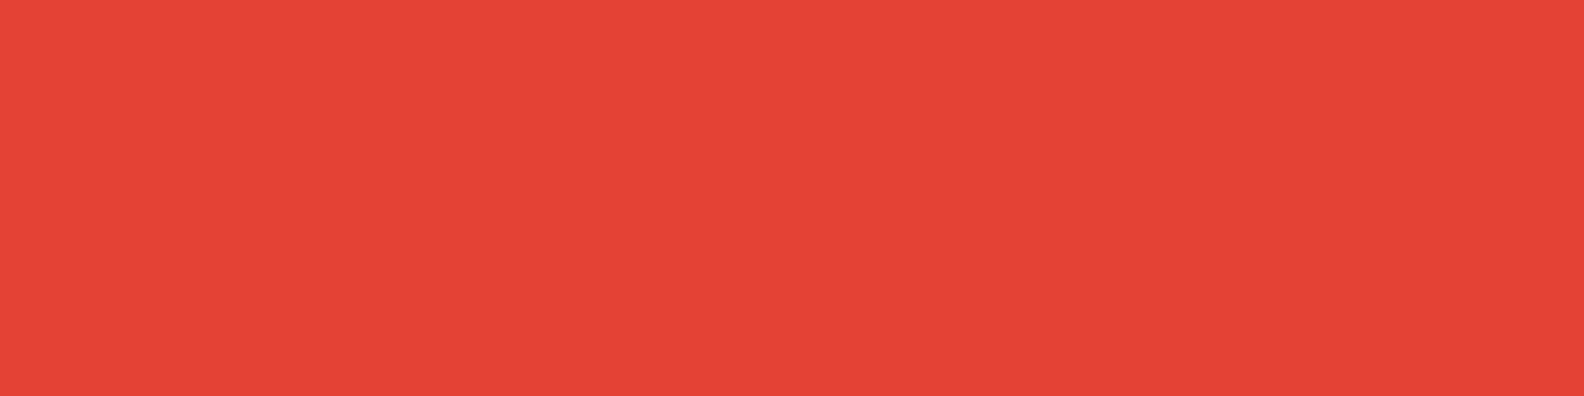 1584x396 Cinnabar Solid Color Background